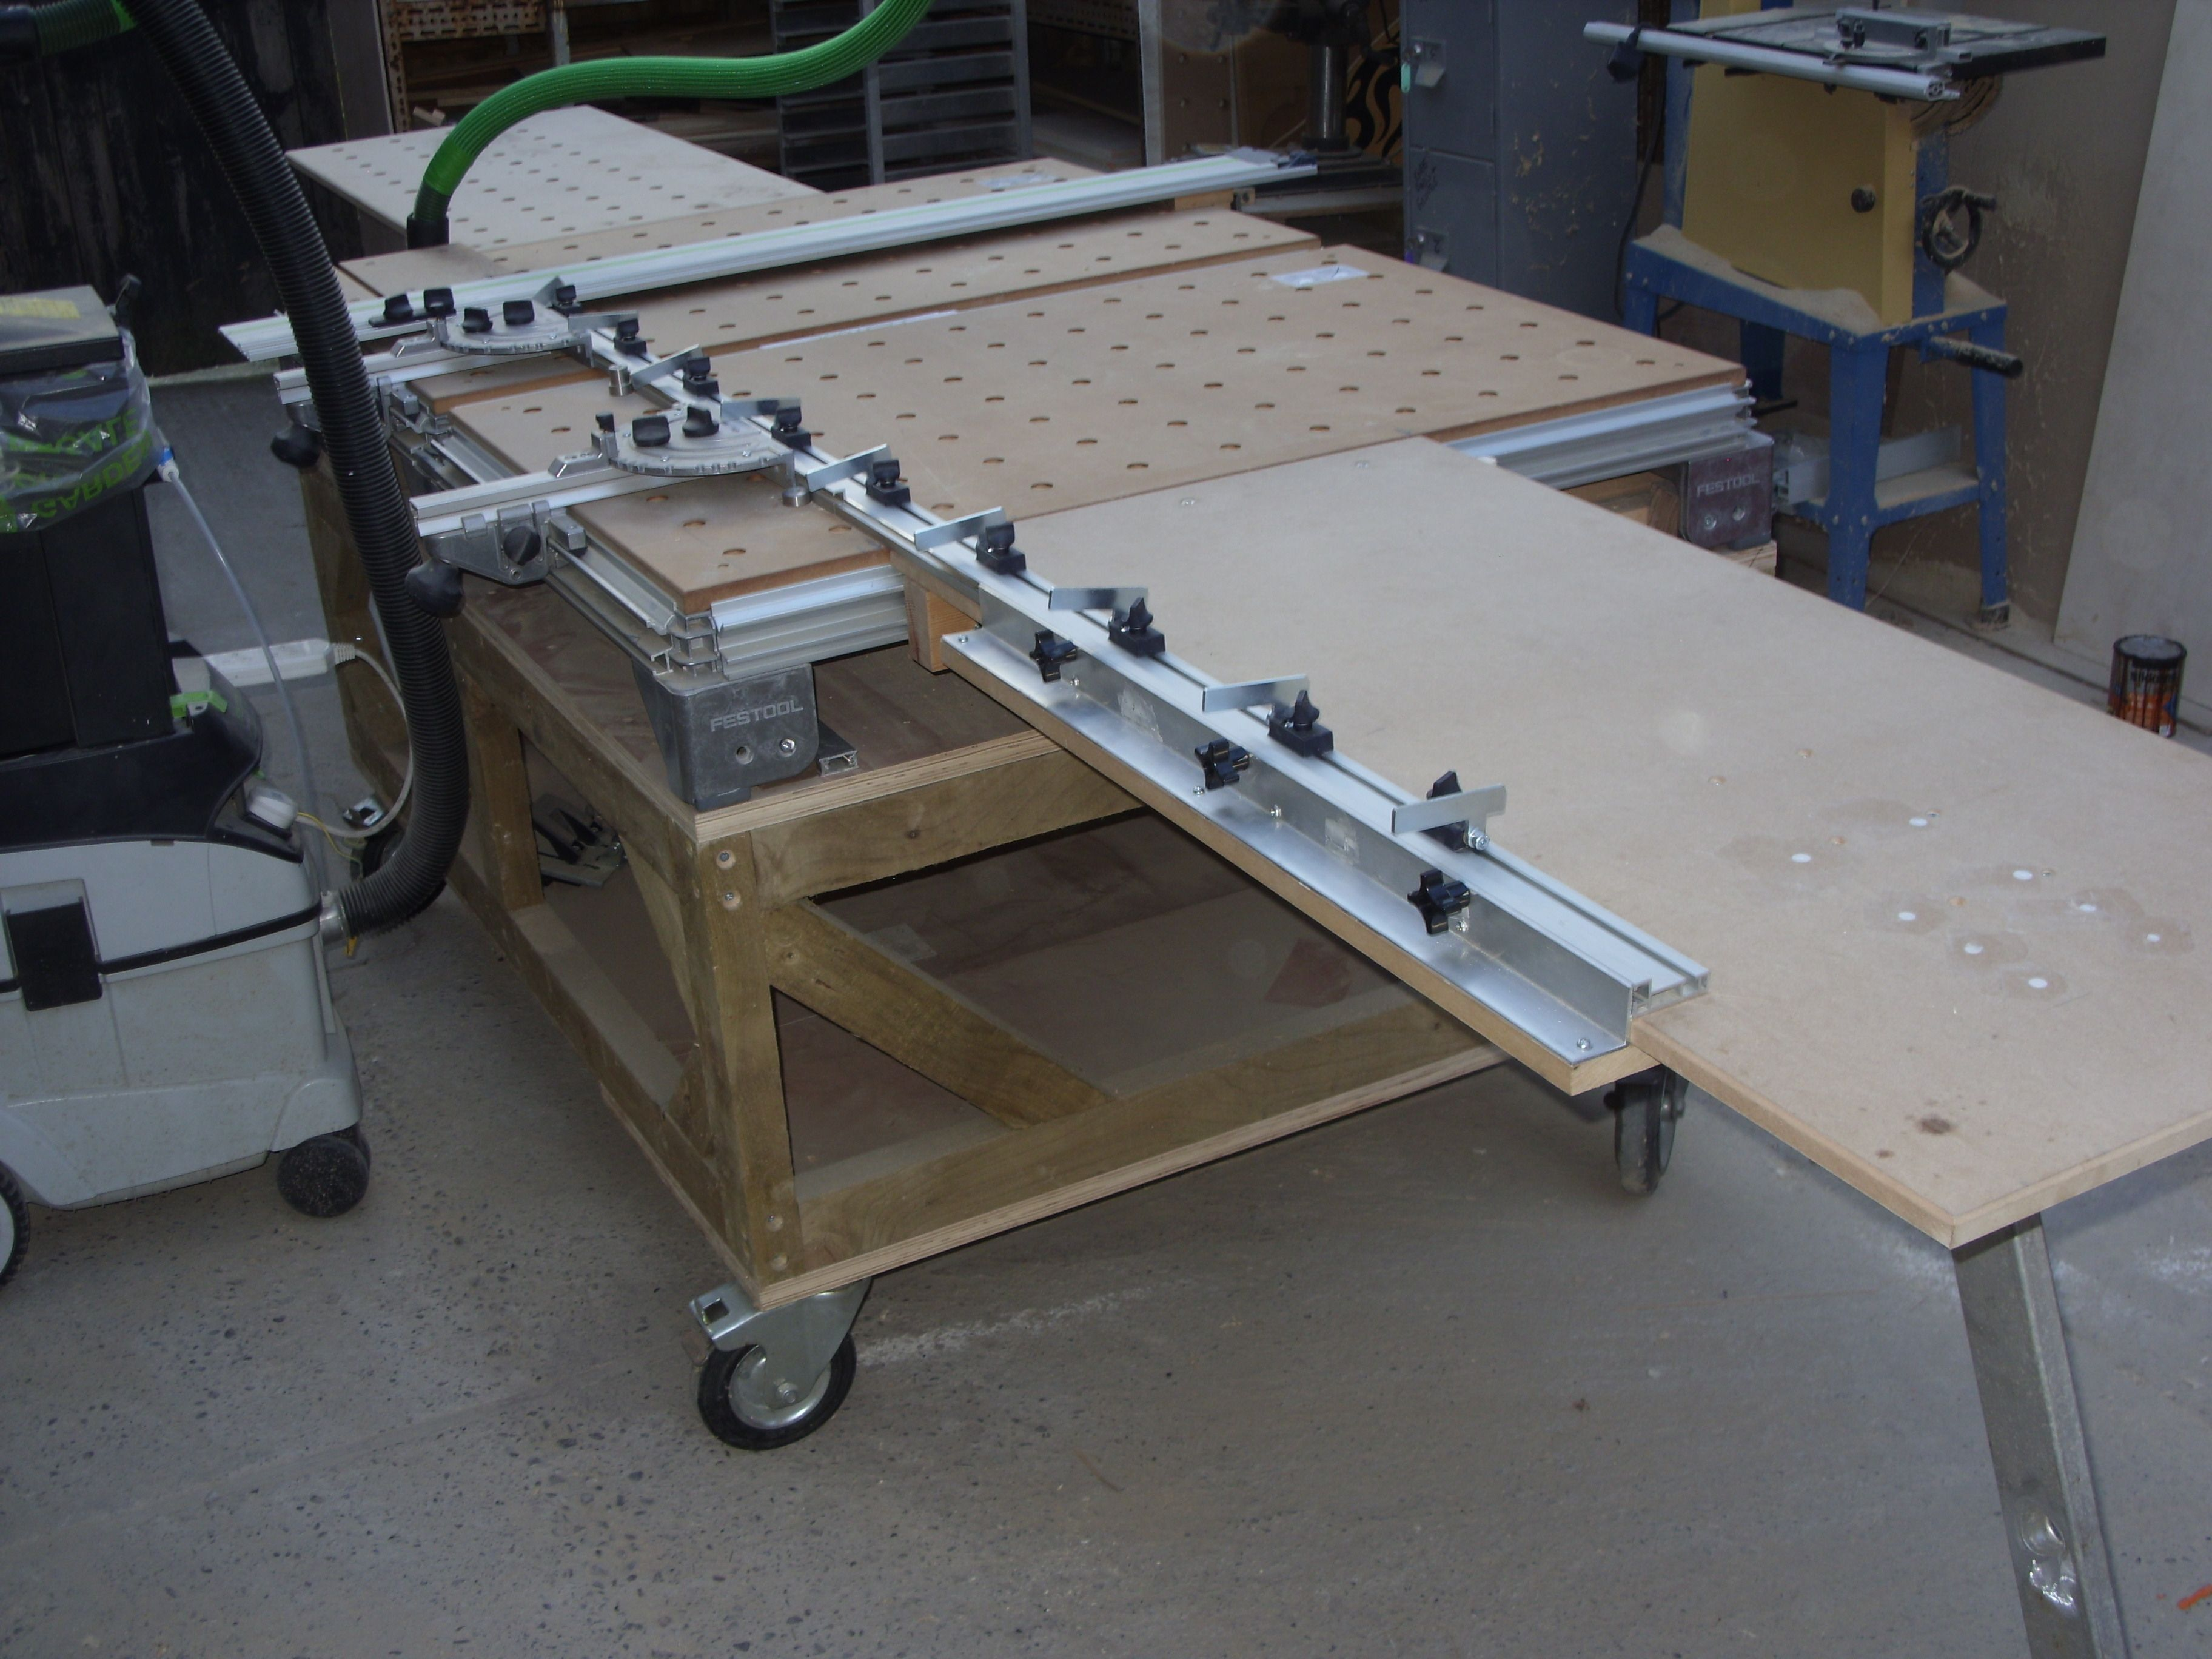 diy table saw fence guide